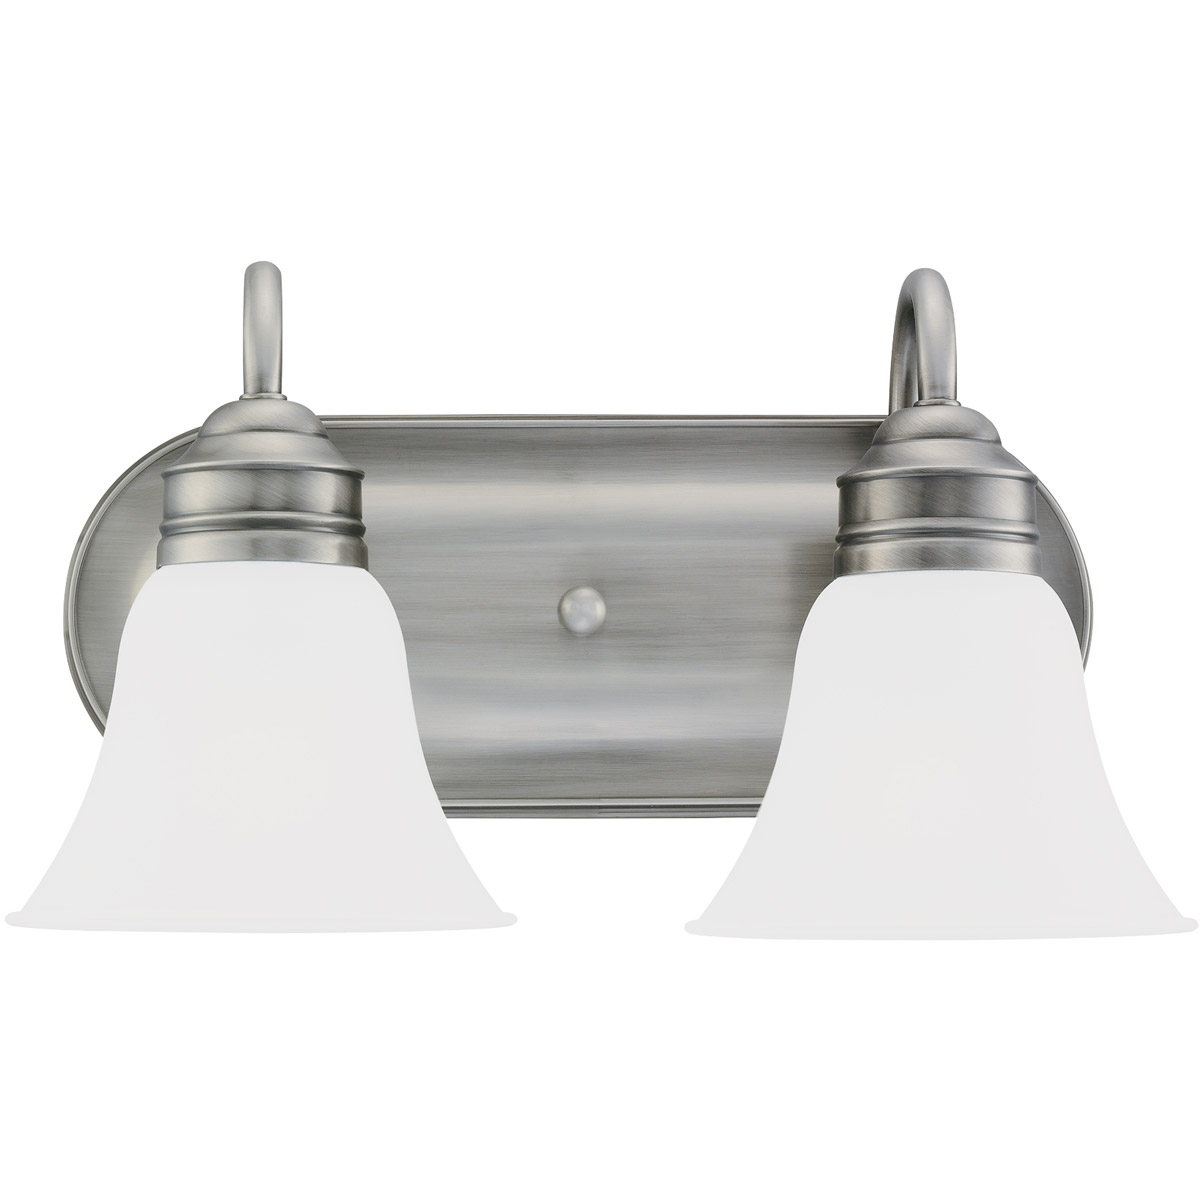 Sea Gull 44851-965 Gladstone 2 Light 15 inch Antique Brushed Nickel Bath Vanity Wall Light in Satin Etched Glass photo